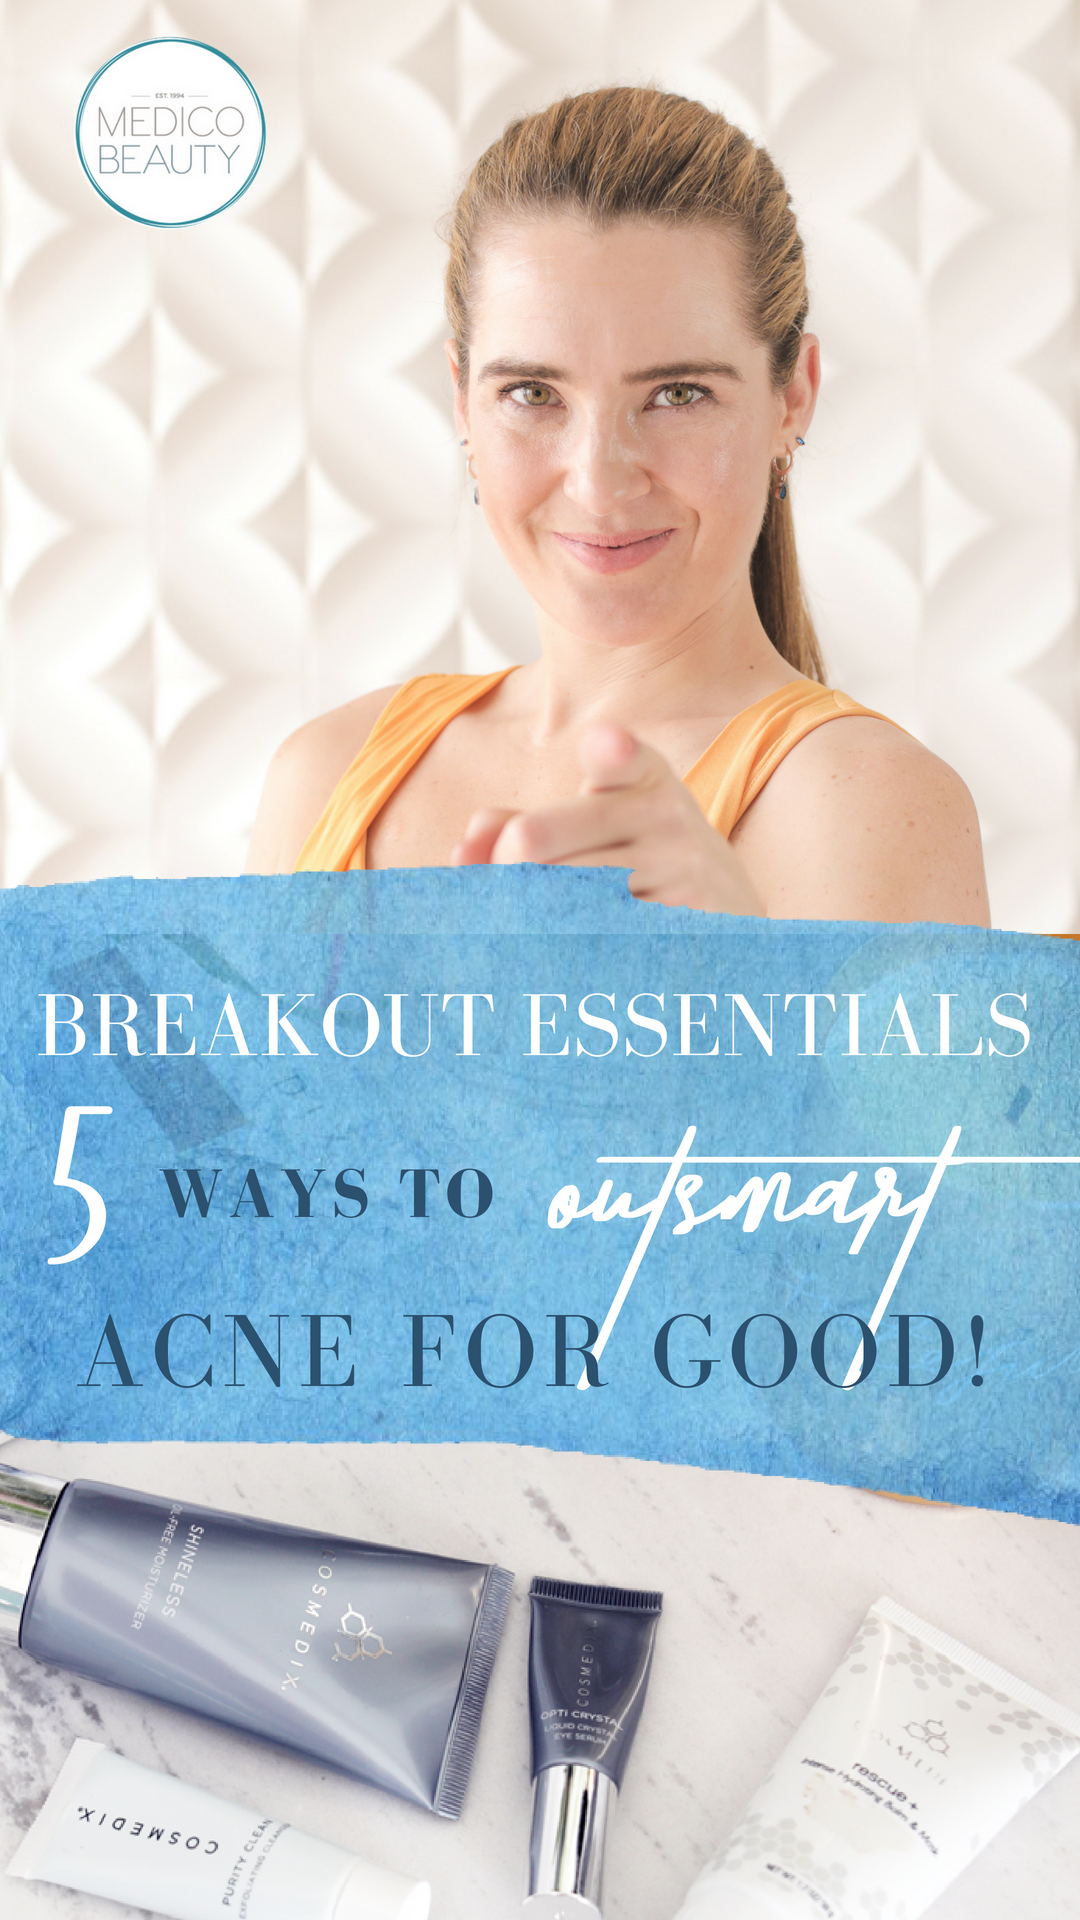 breakout essentials outsmart acne